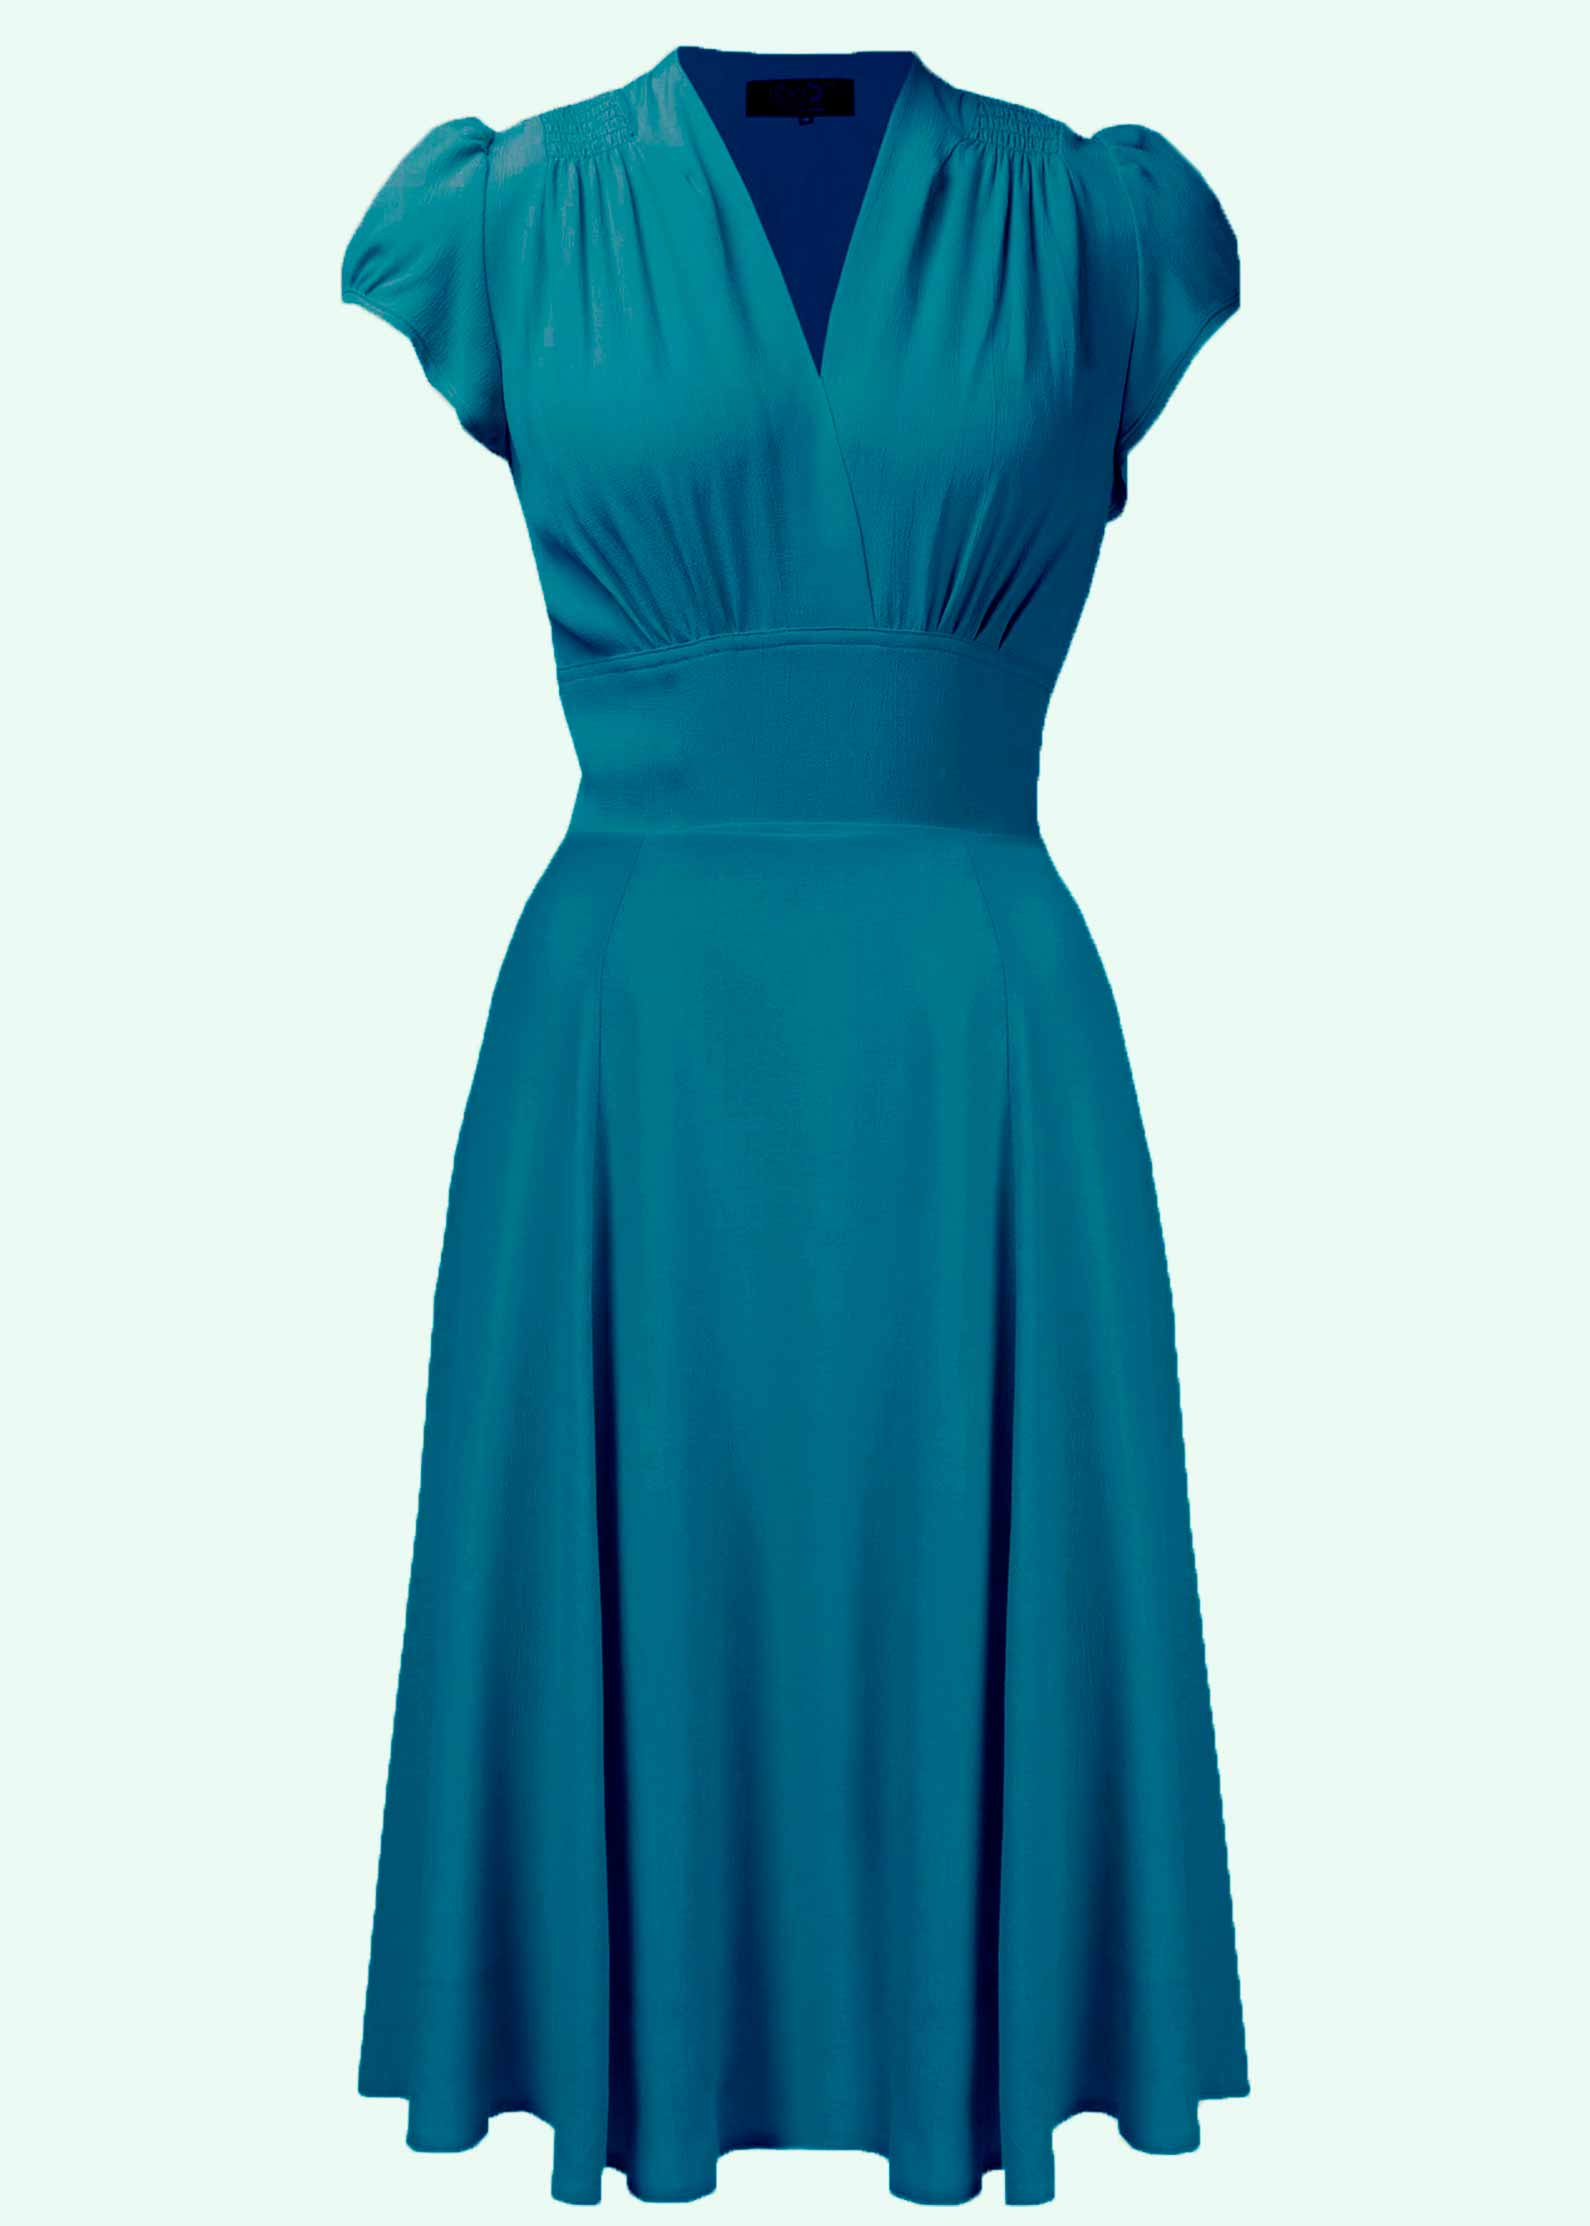 Ava dress from The House Of Foxy in Teal